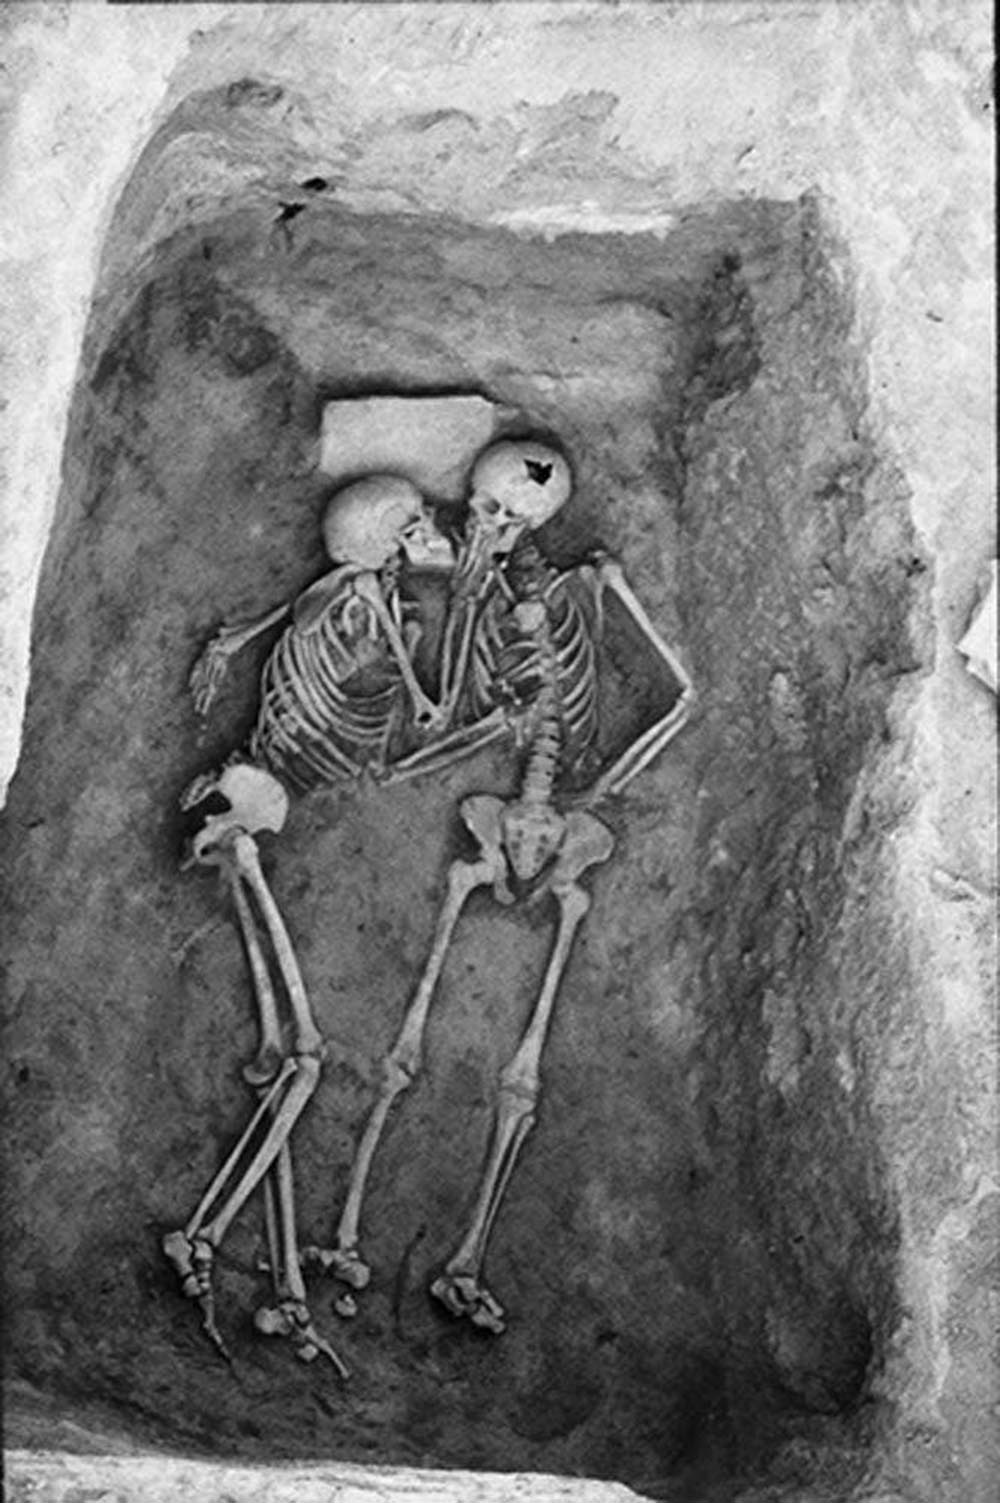 The 2800 years old kiss as if to signify that love is eternal.